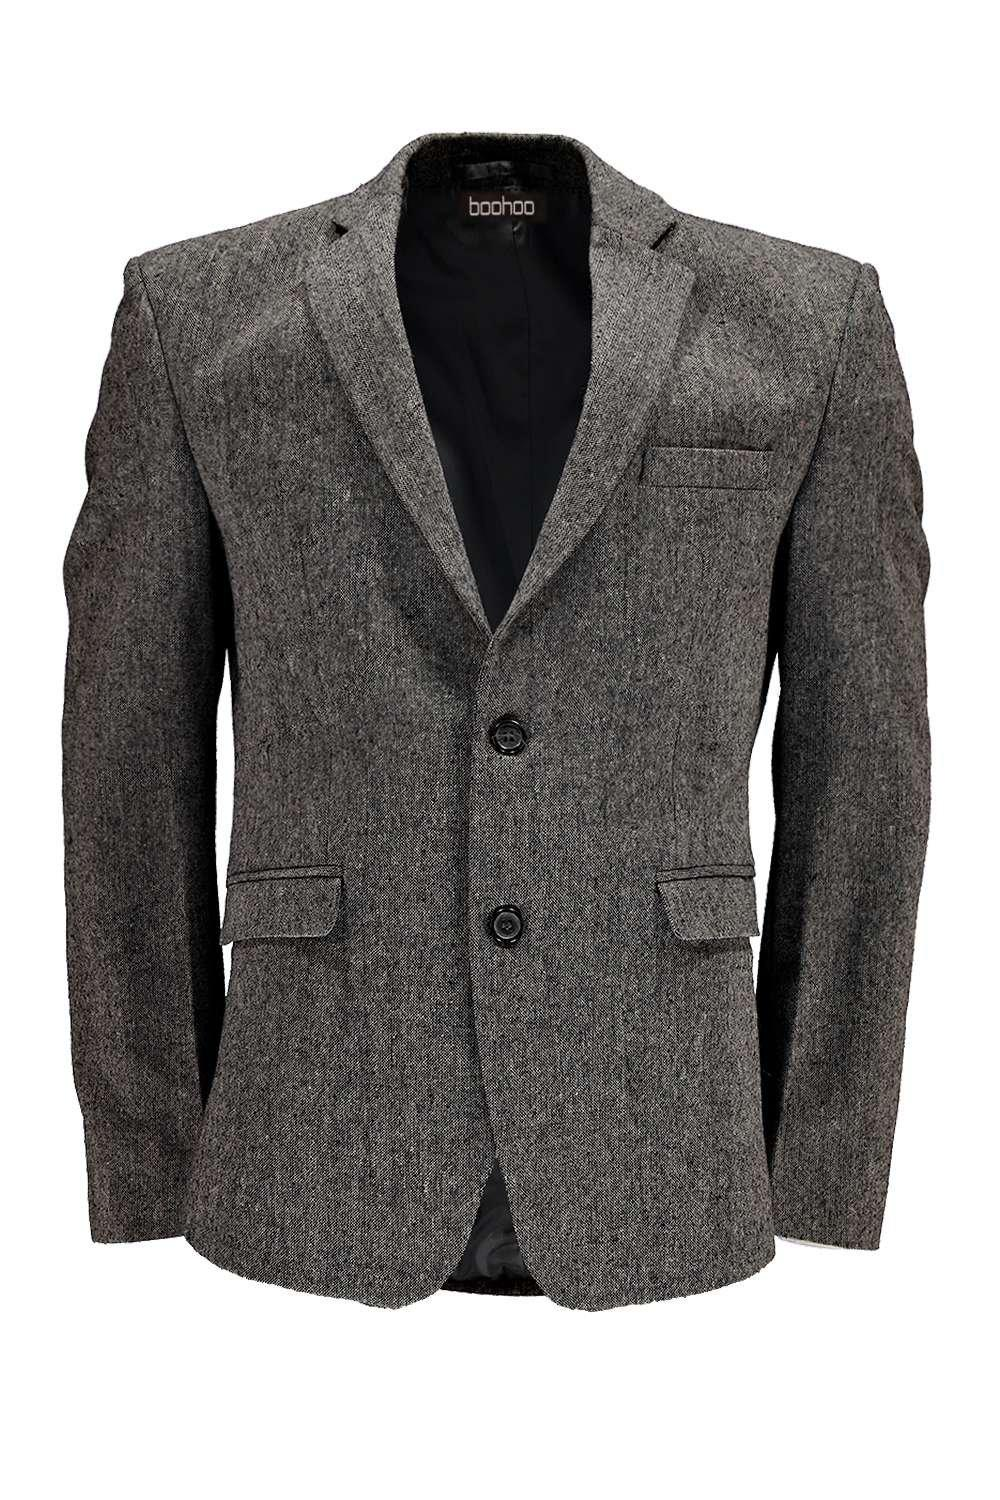 boohoo blazer slim en tweed pour homme ebay. Black Bedroom Furniture Sets. Home Design Ideas